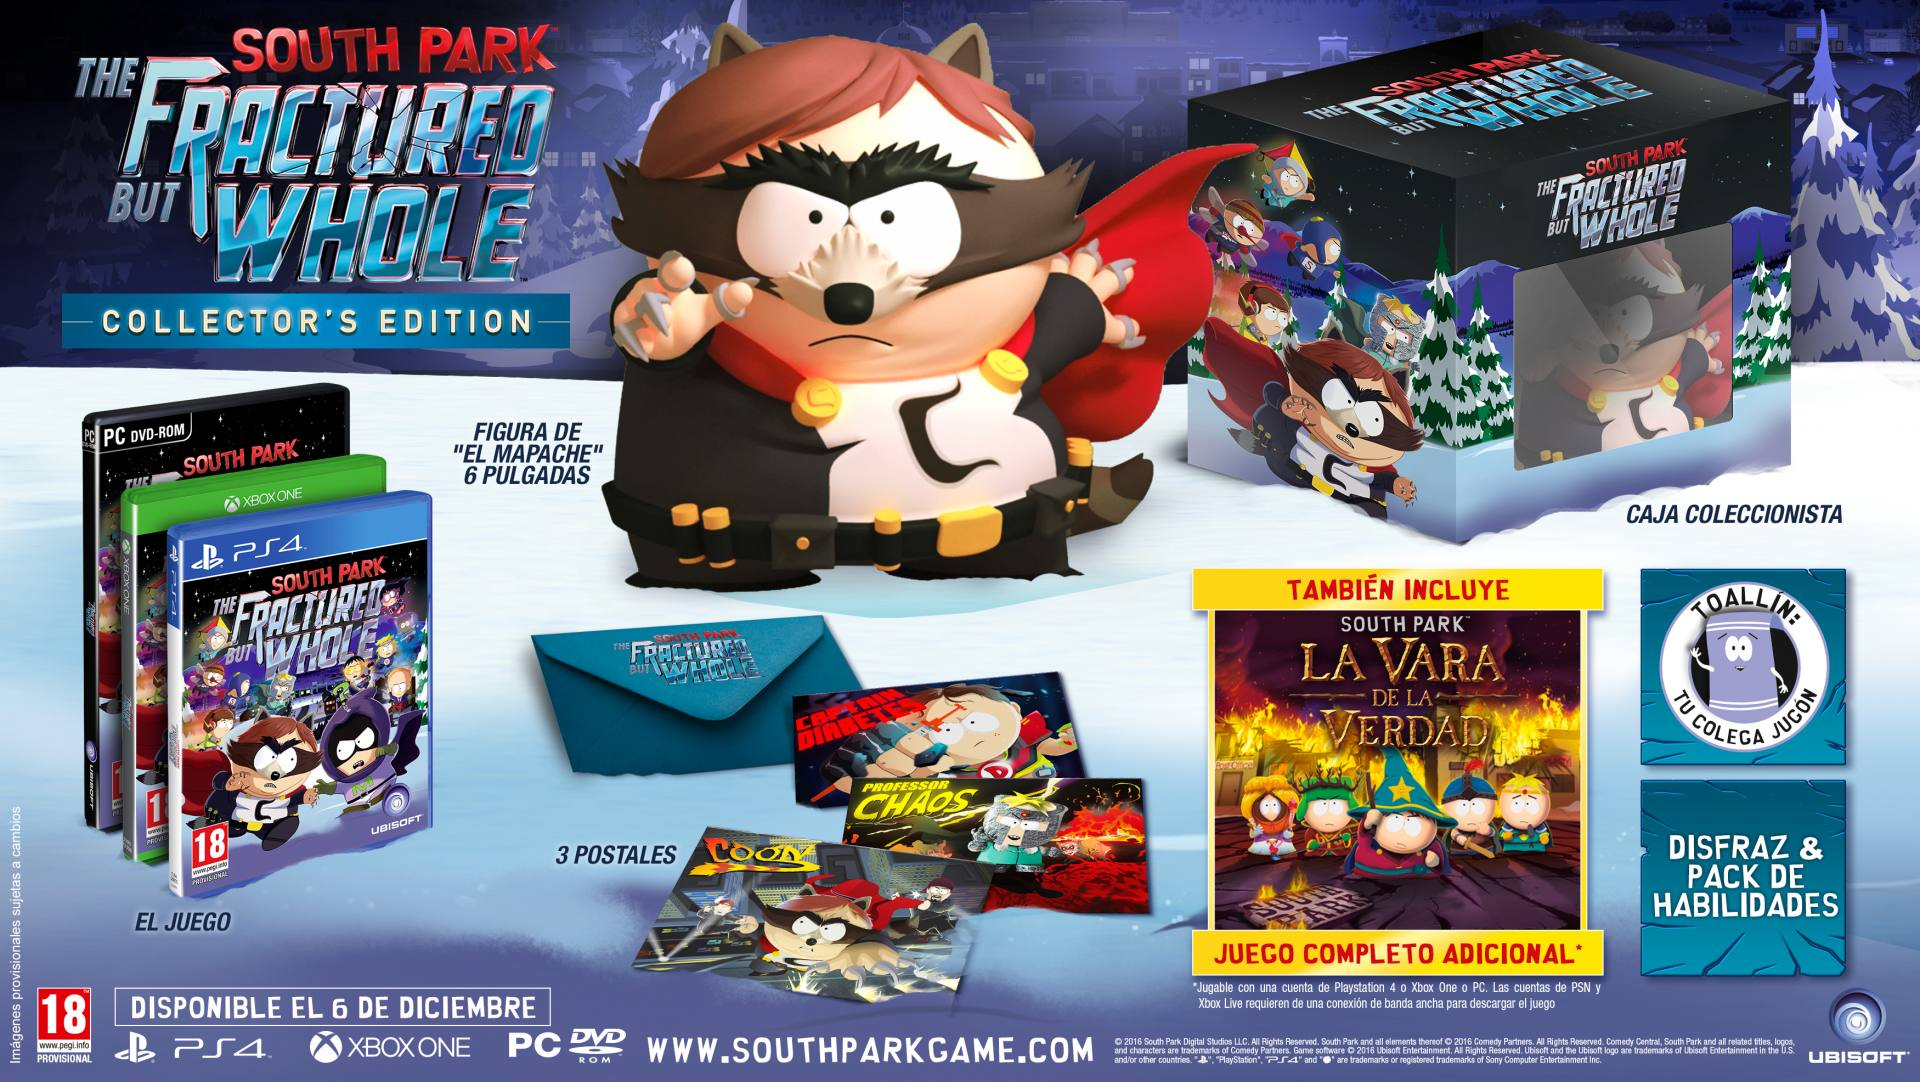 South Park The Fractured But Whole 13-06-16 Collectors Edtion 000